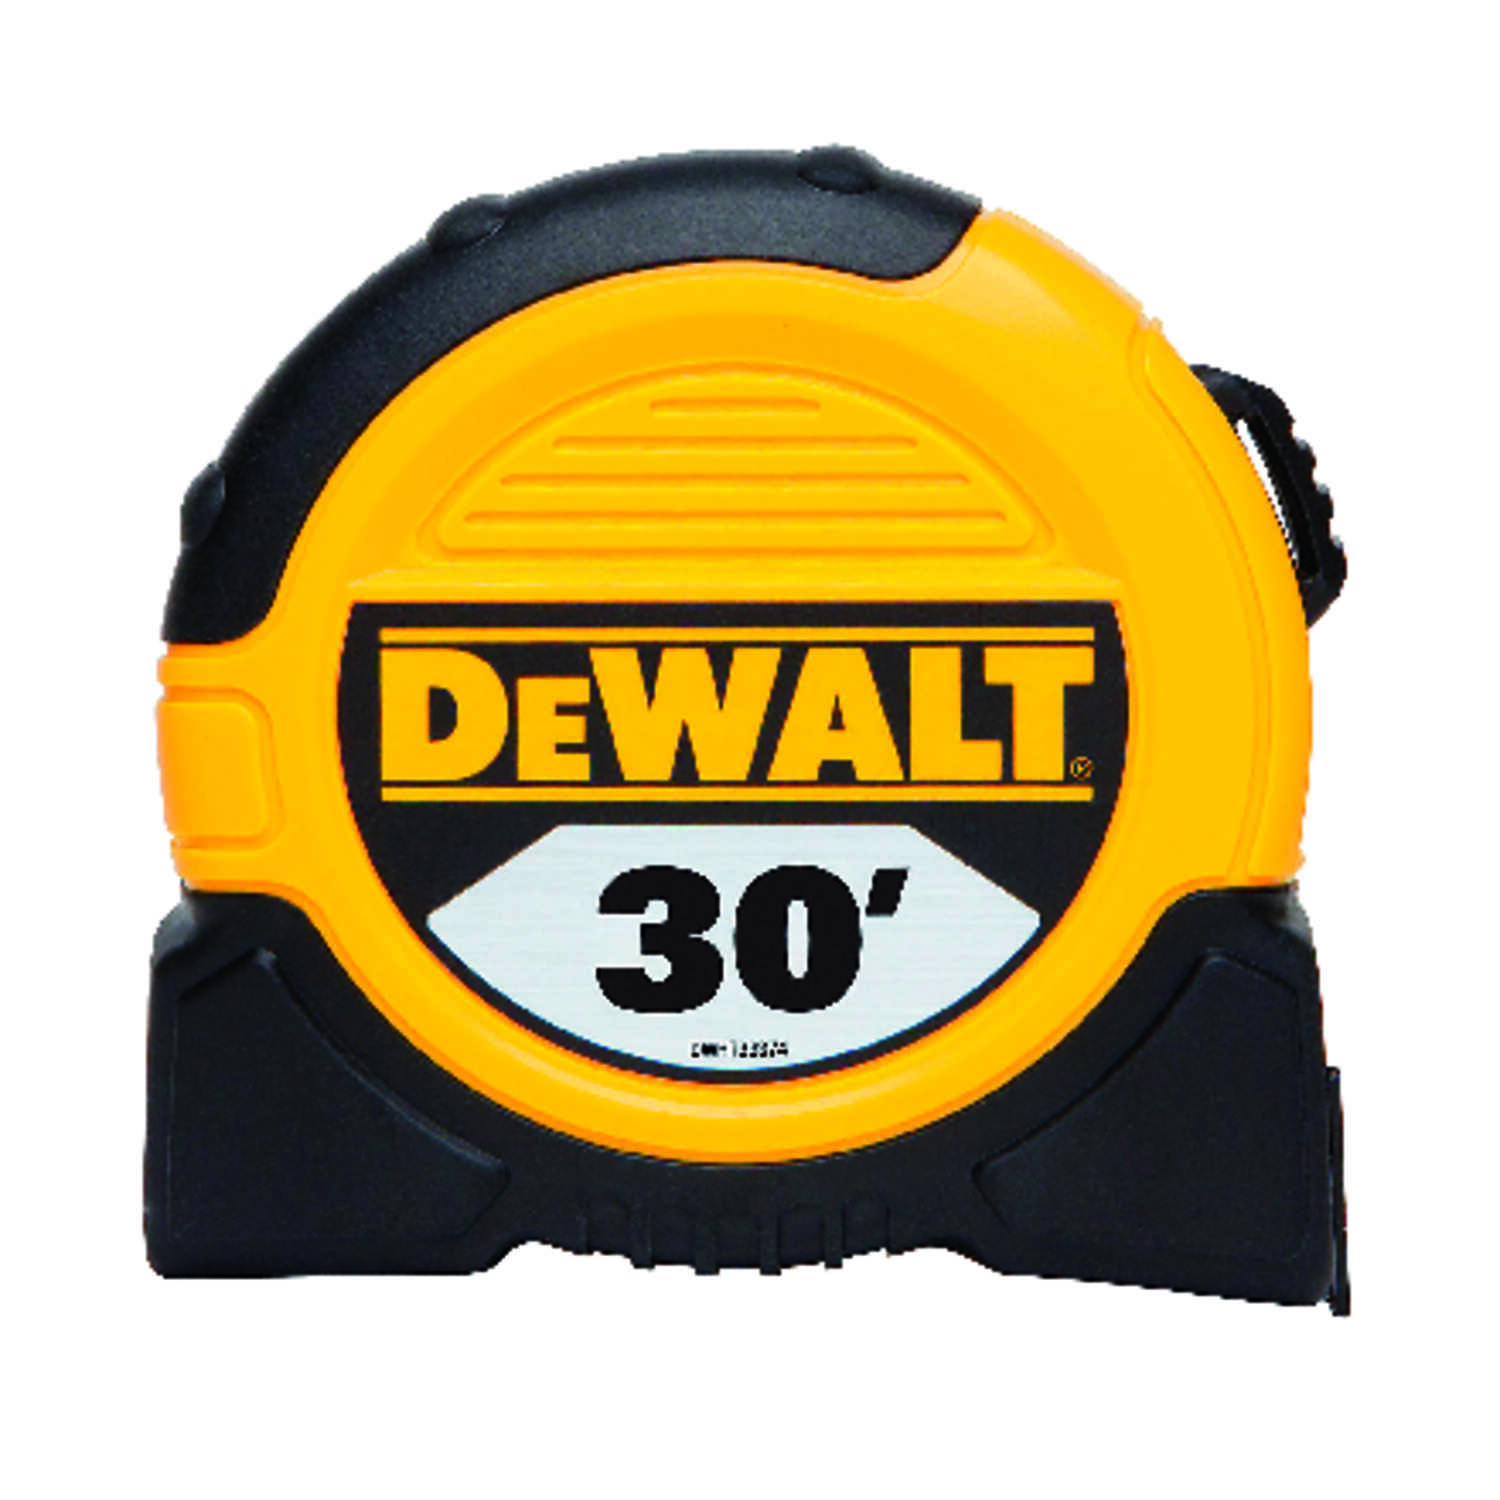 DeWalt  30 ft. L Yellow  Tape Measure